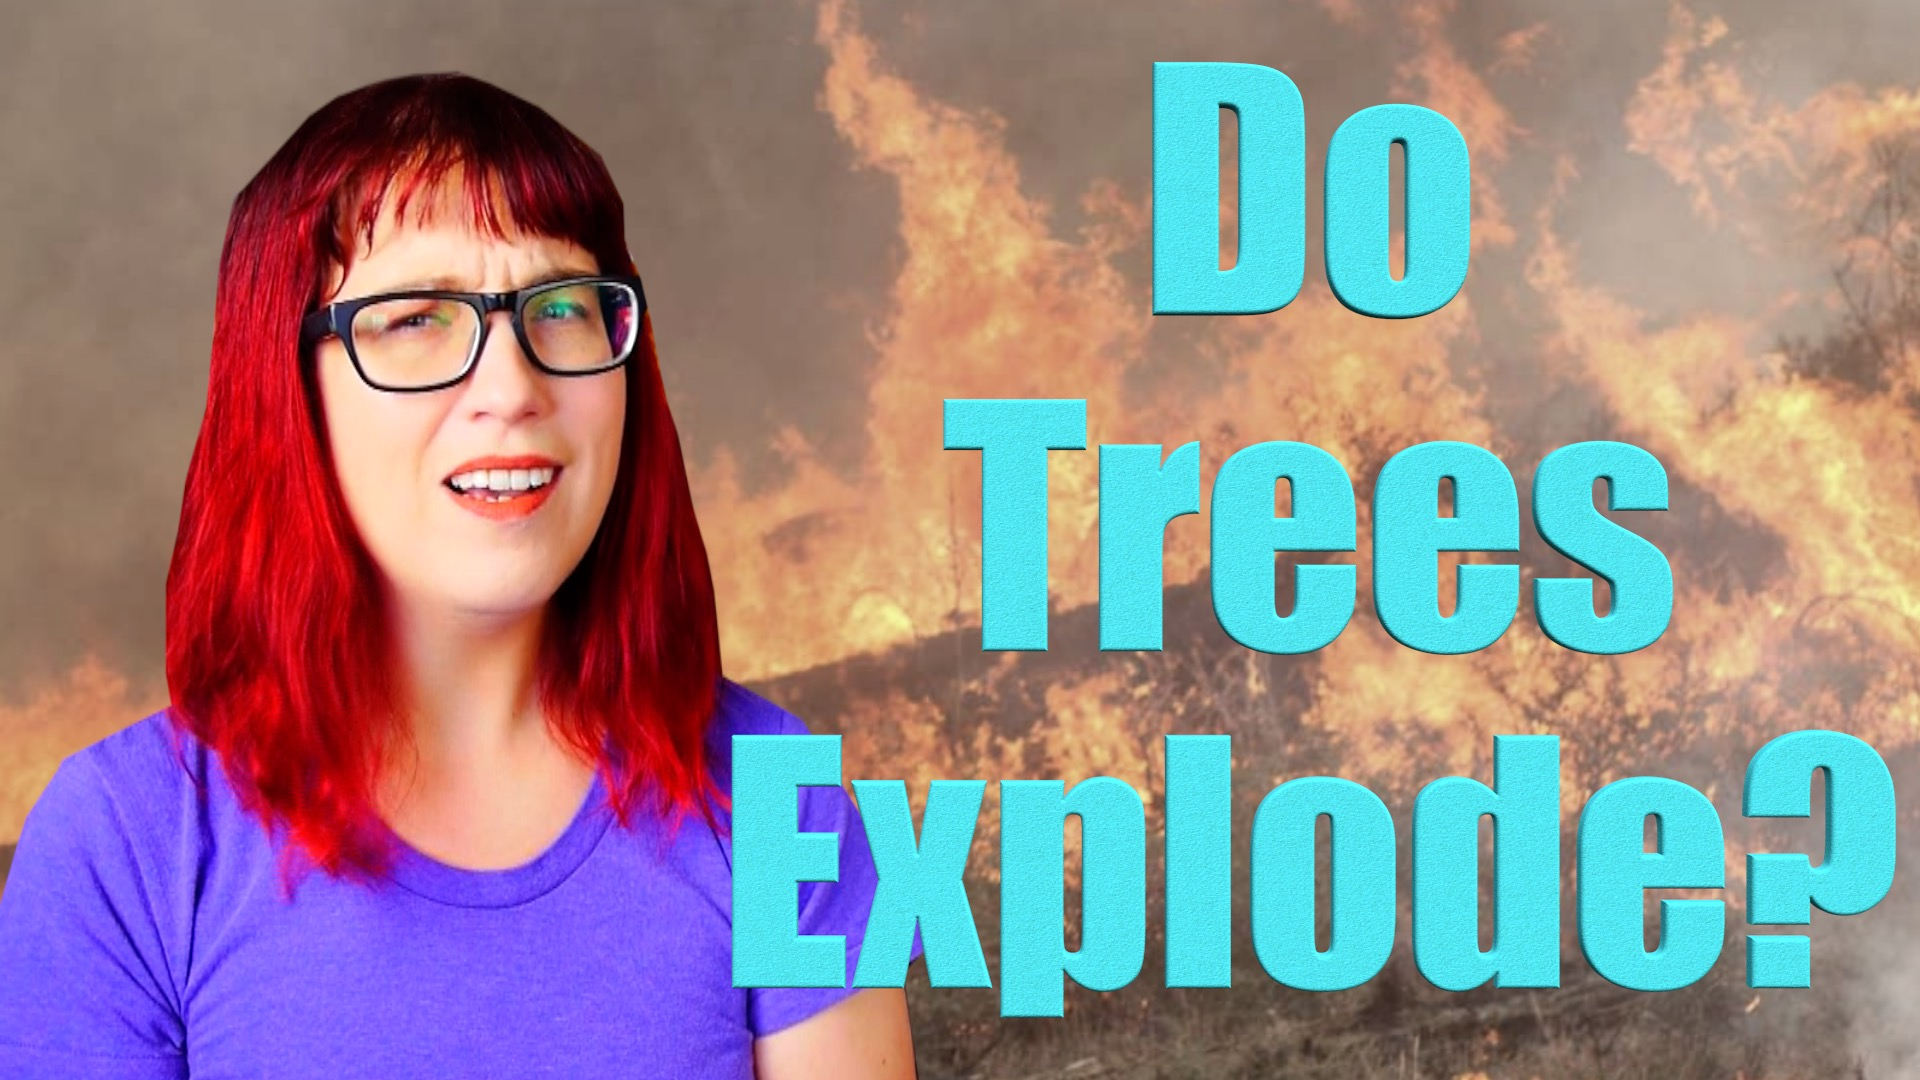 Trump Says Trees Can Explode. He's Not Wrong!